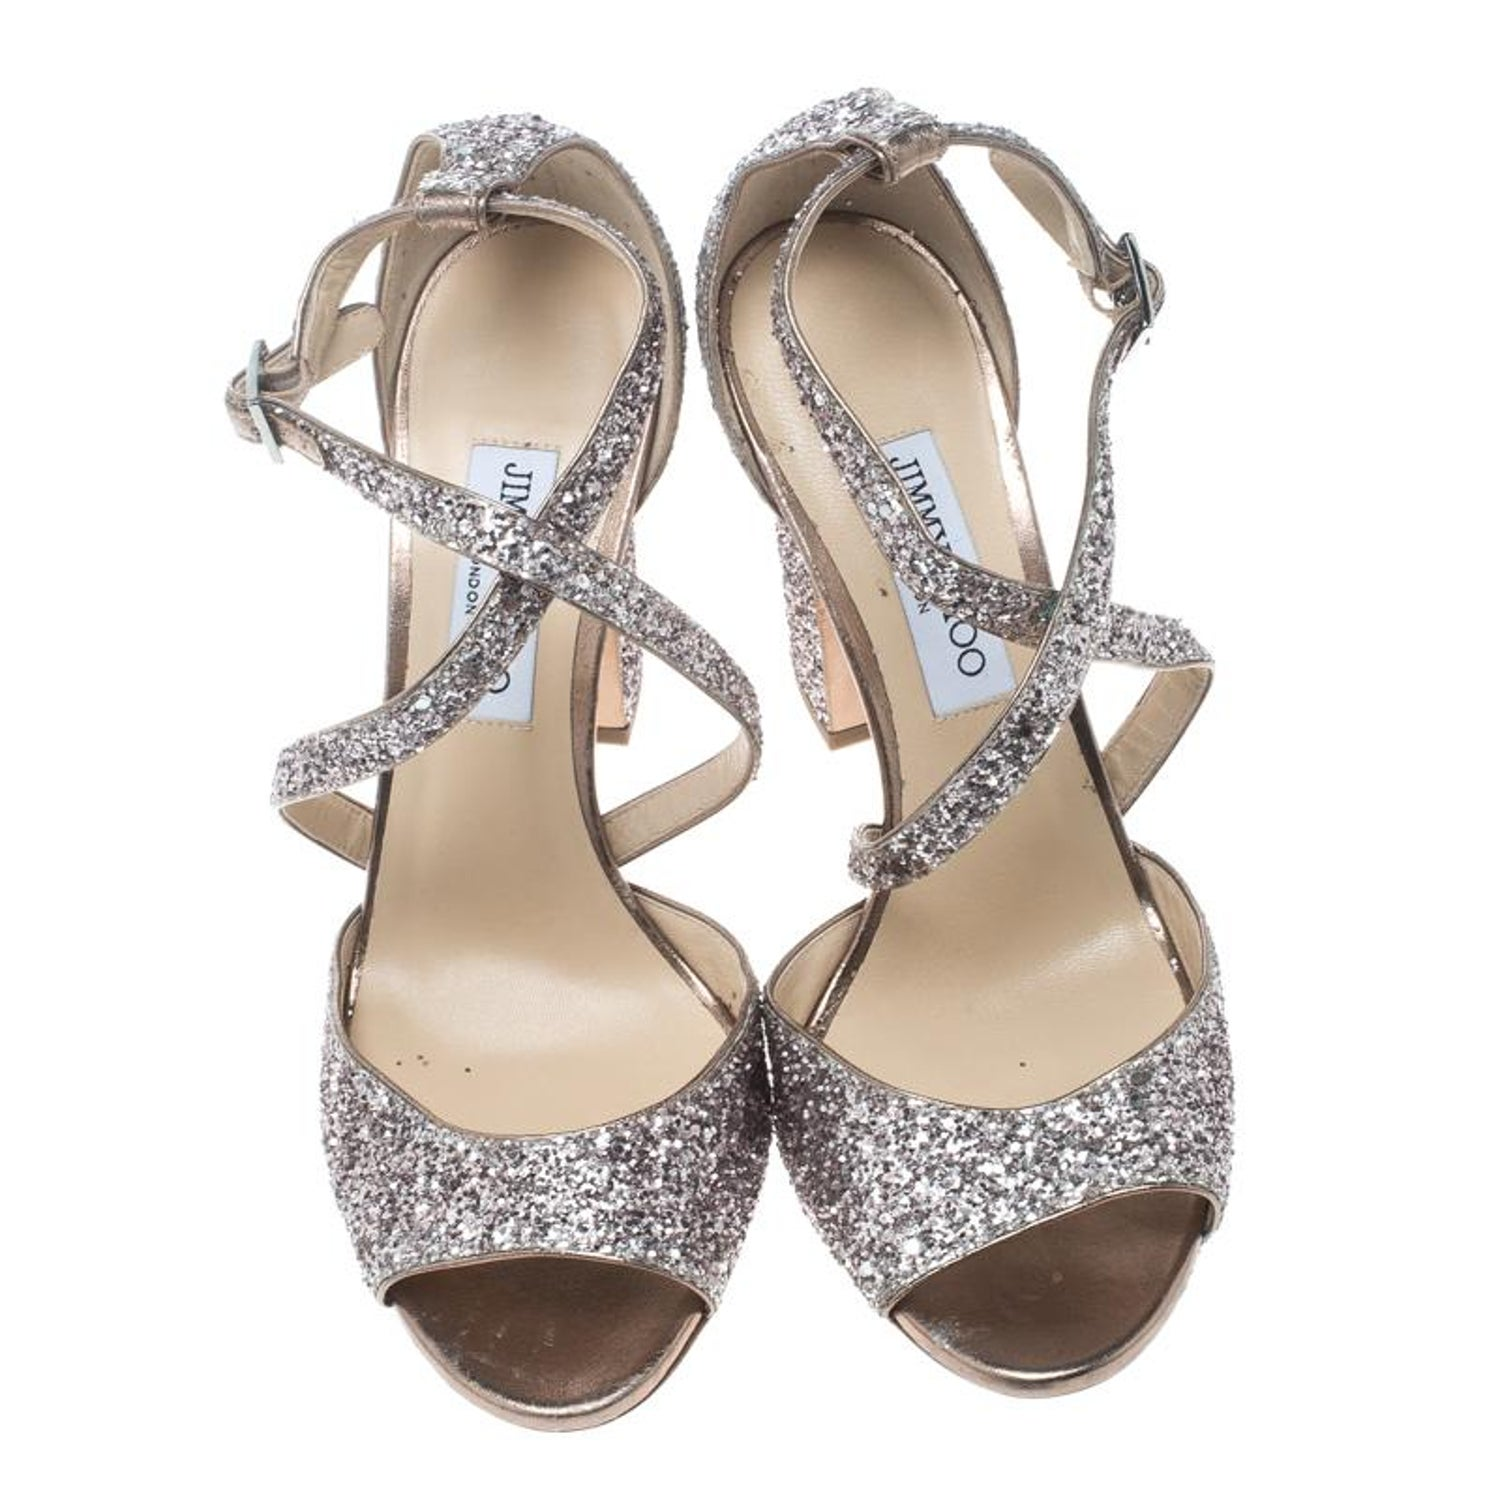 e02e8cda233e Jimmy Choo Metallic Rose Coarse Glitter Carrie Cross Strap Sandals Size 41  For Sale at 1stdibs